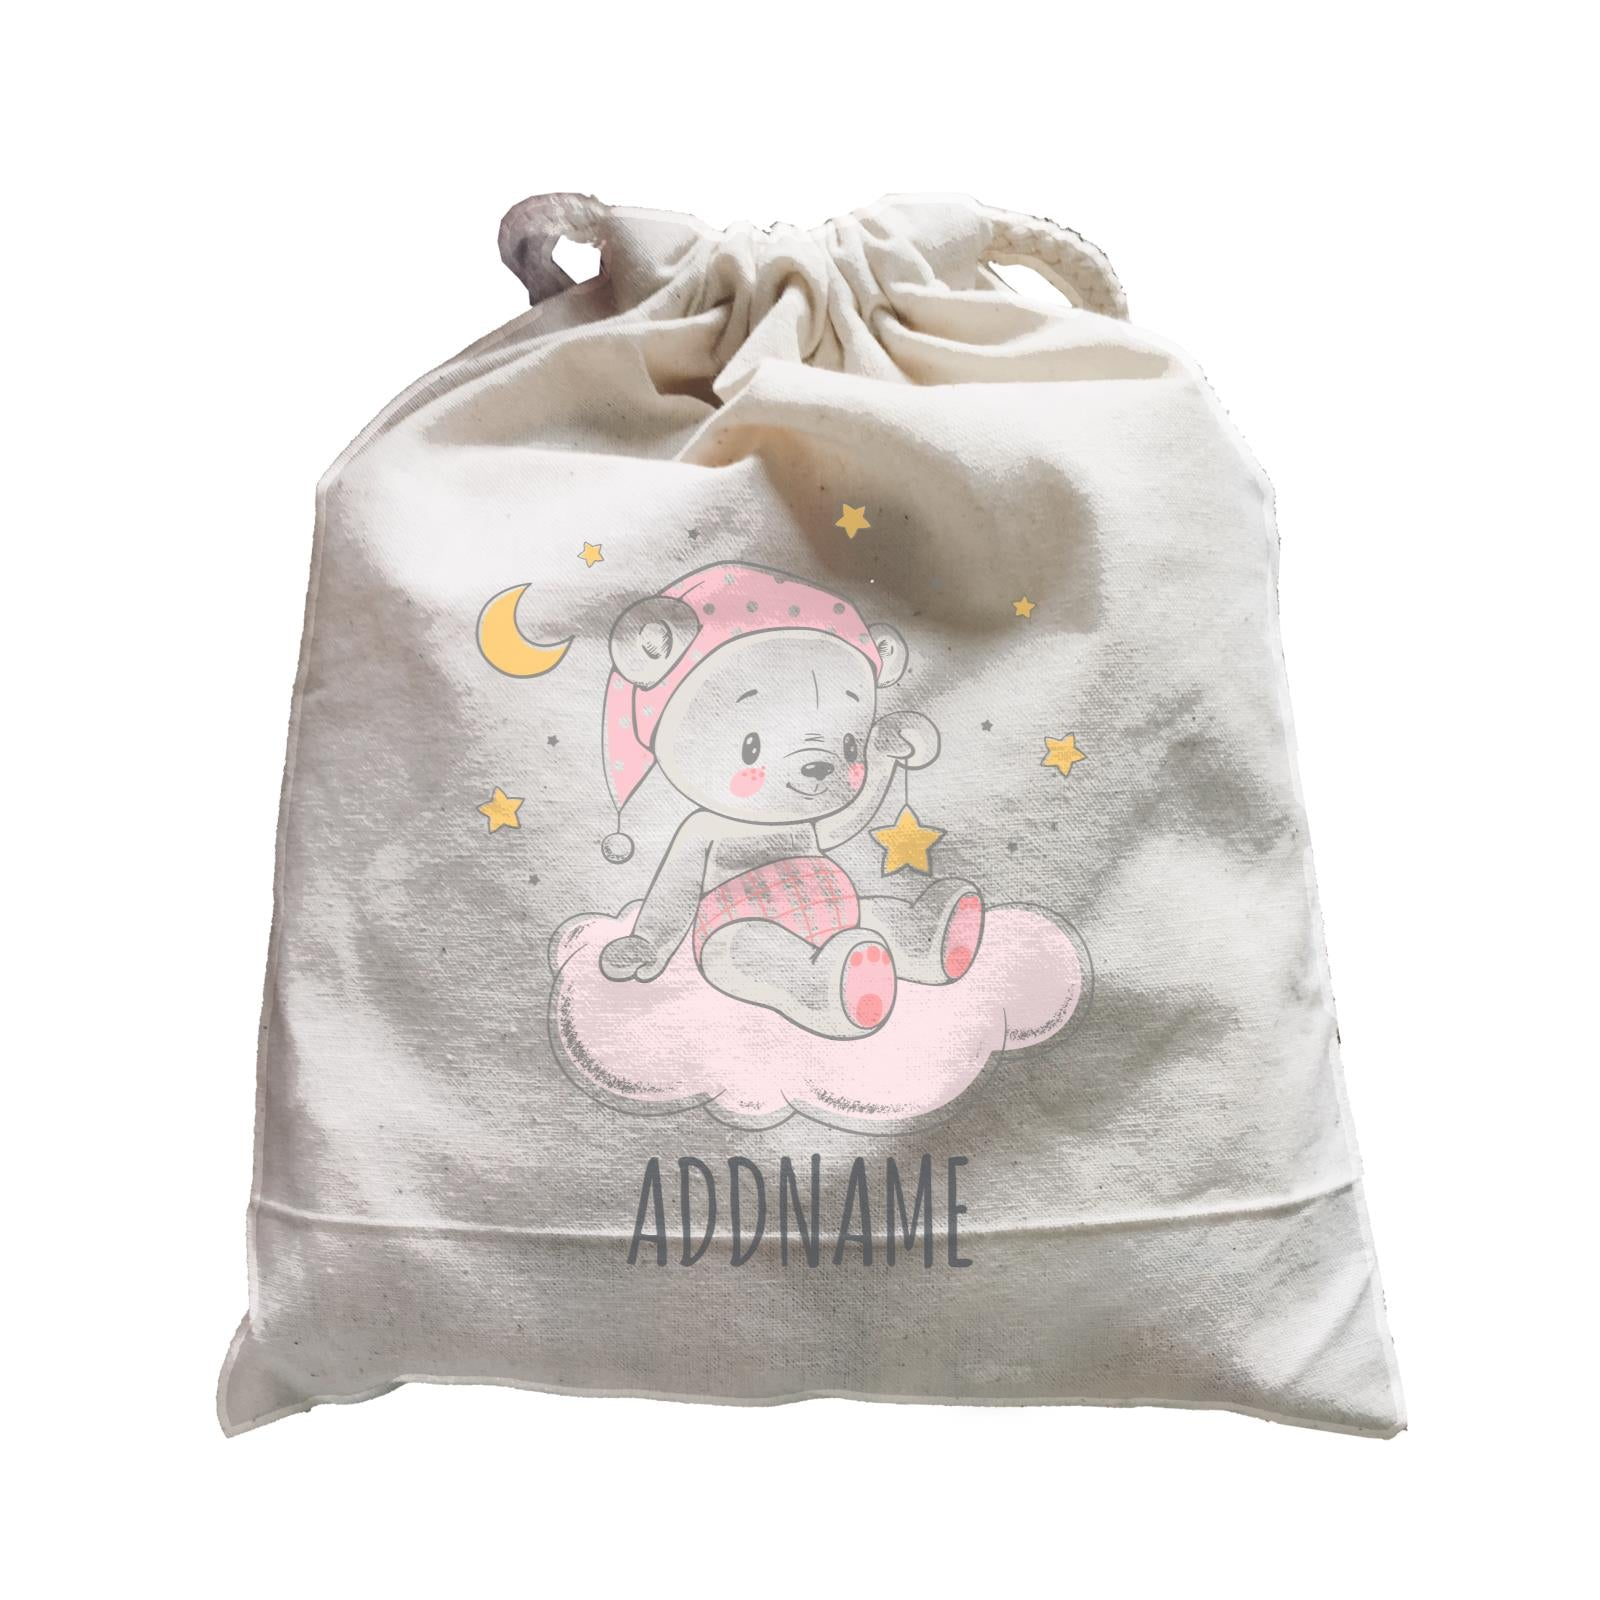 Night Girl Bear Sitting on Cloud Satchel Personalizable Designs Cute Sweet Animal For Girls Pinky Newborn HG